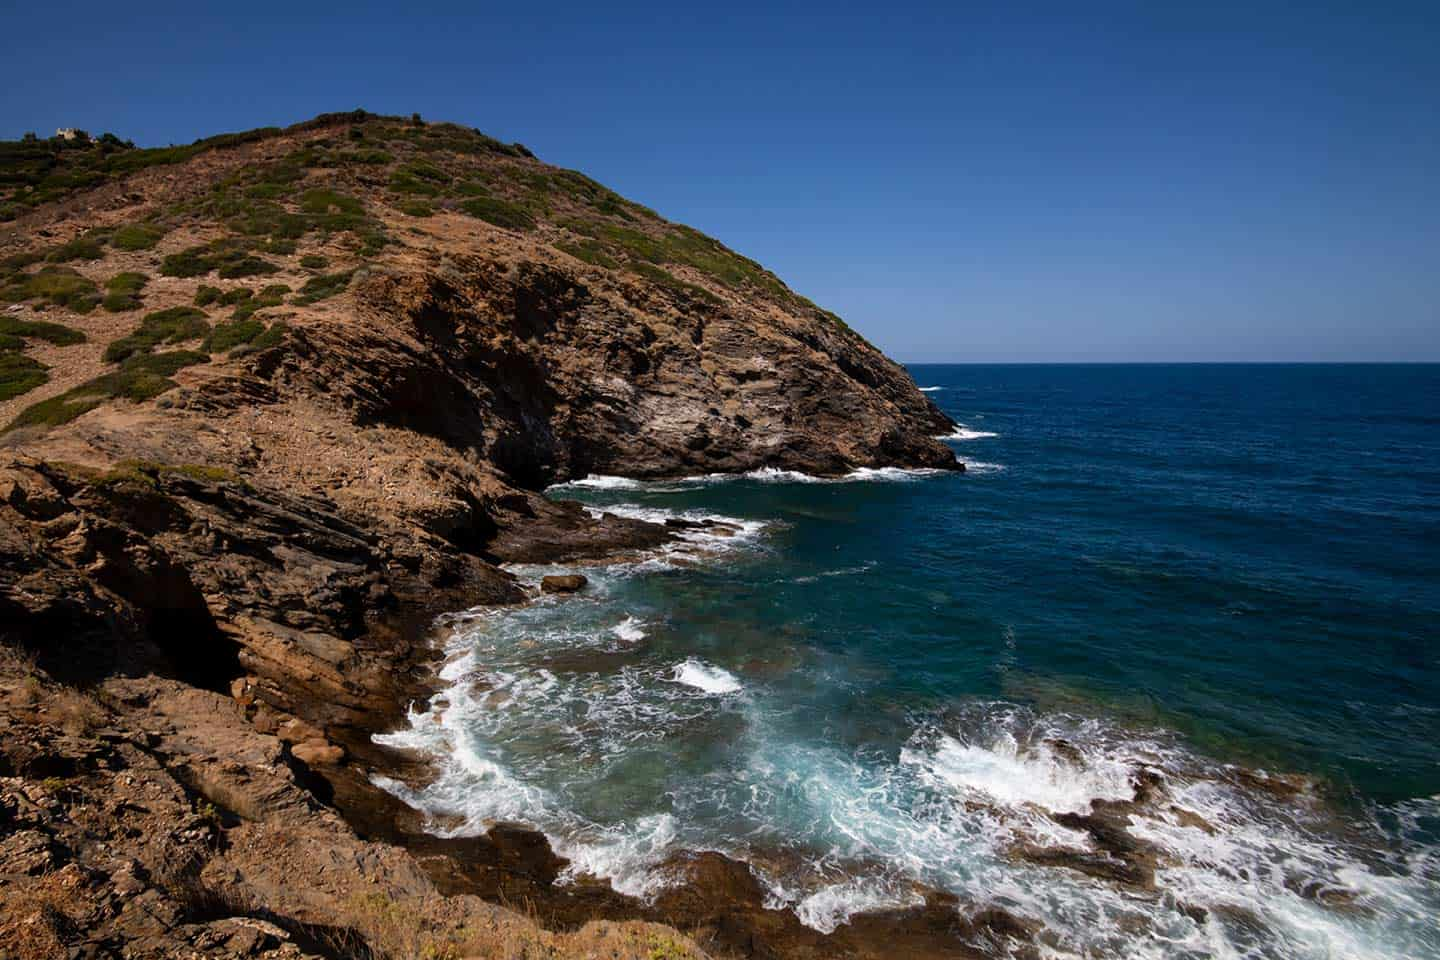 Image of rocky coastline near Bali Crete